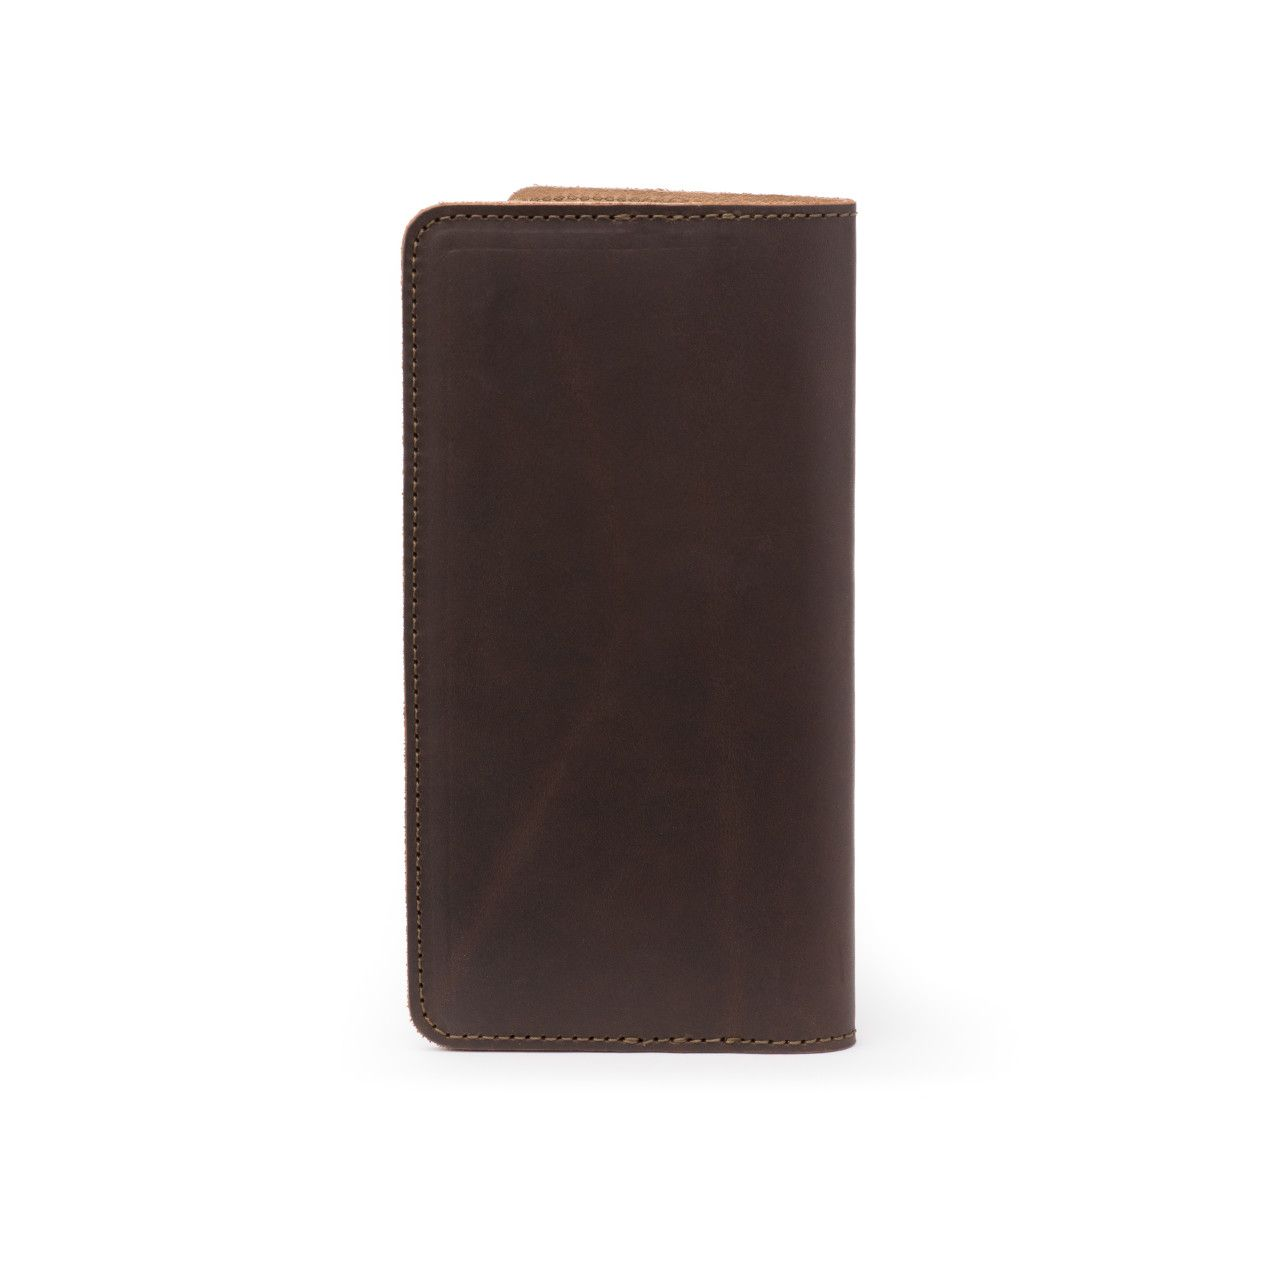 long leather passport wallet medium in dark coffee brown leather